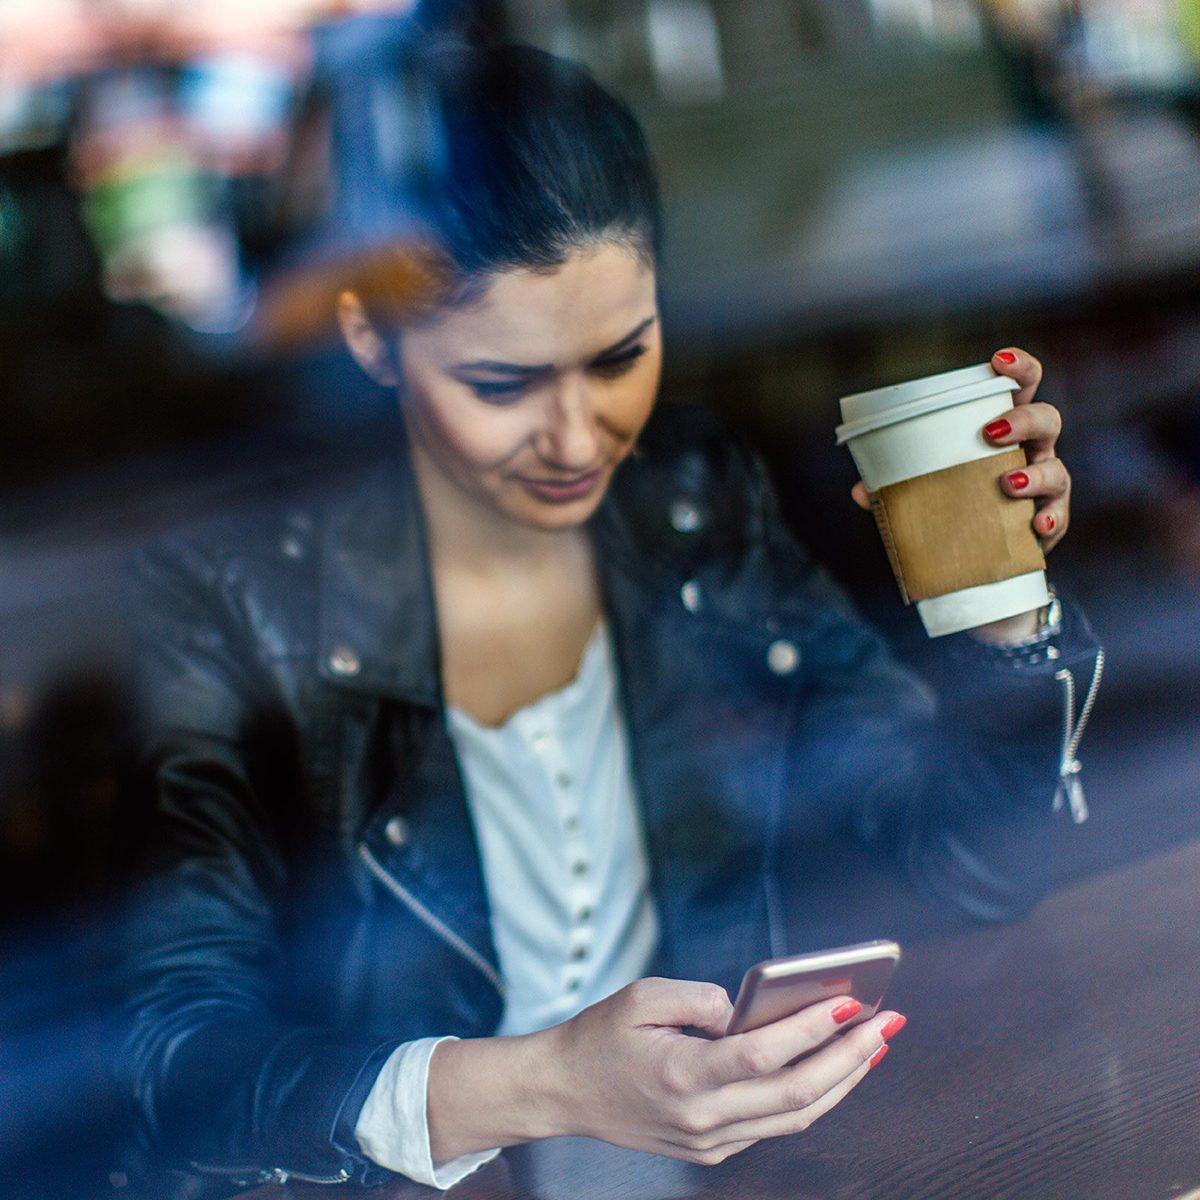 Woman drinking coffee while on phone